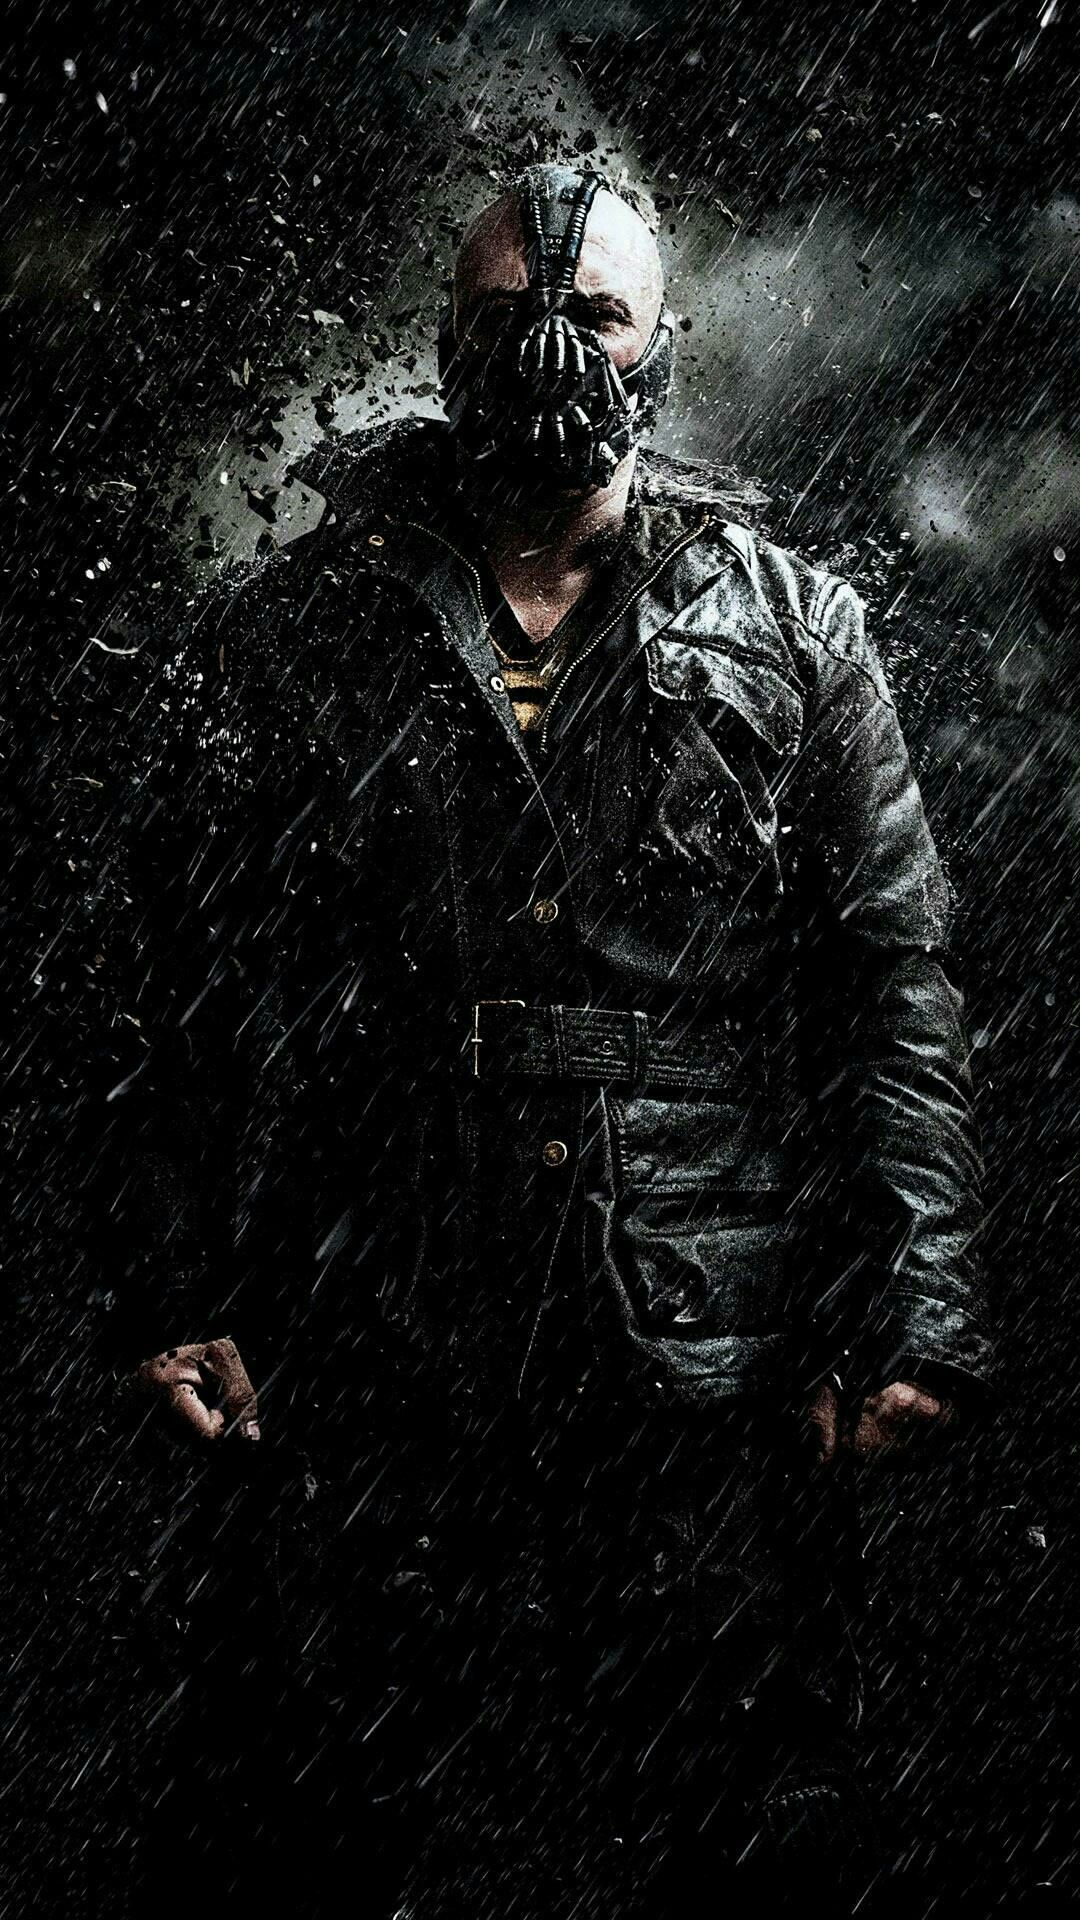 Bane Dark Knight, The Dark Knight Rises, Hd Wallpaper, Wallpapers, Bane  Batman